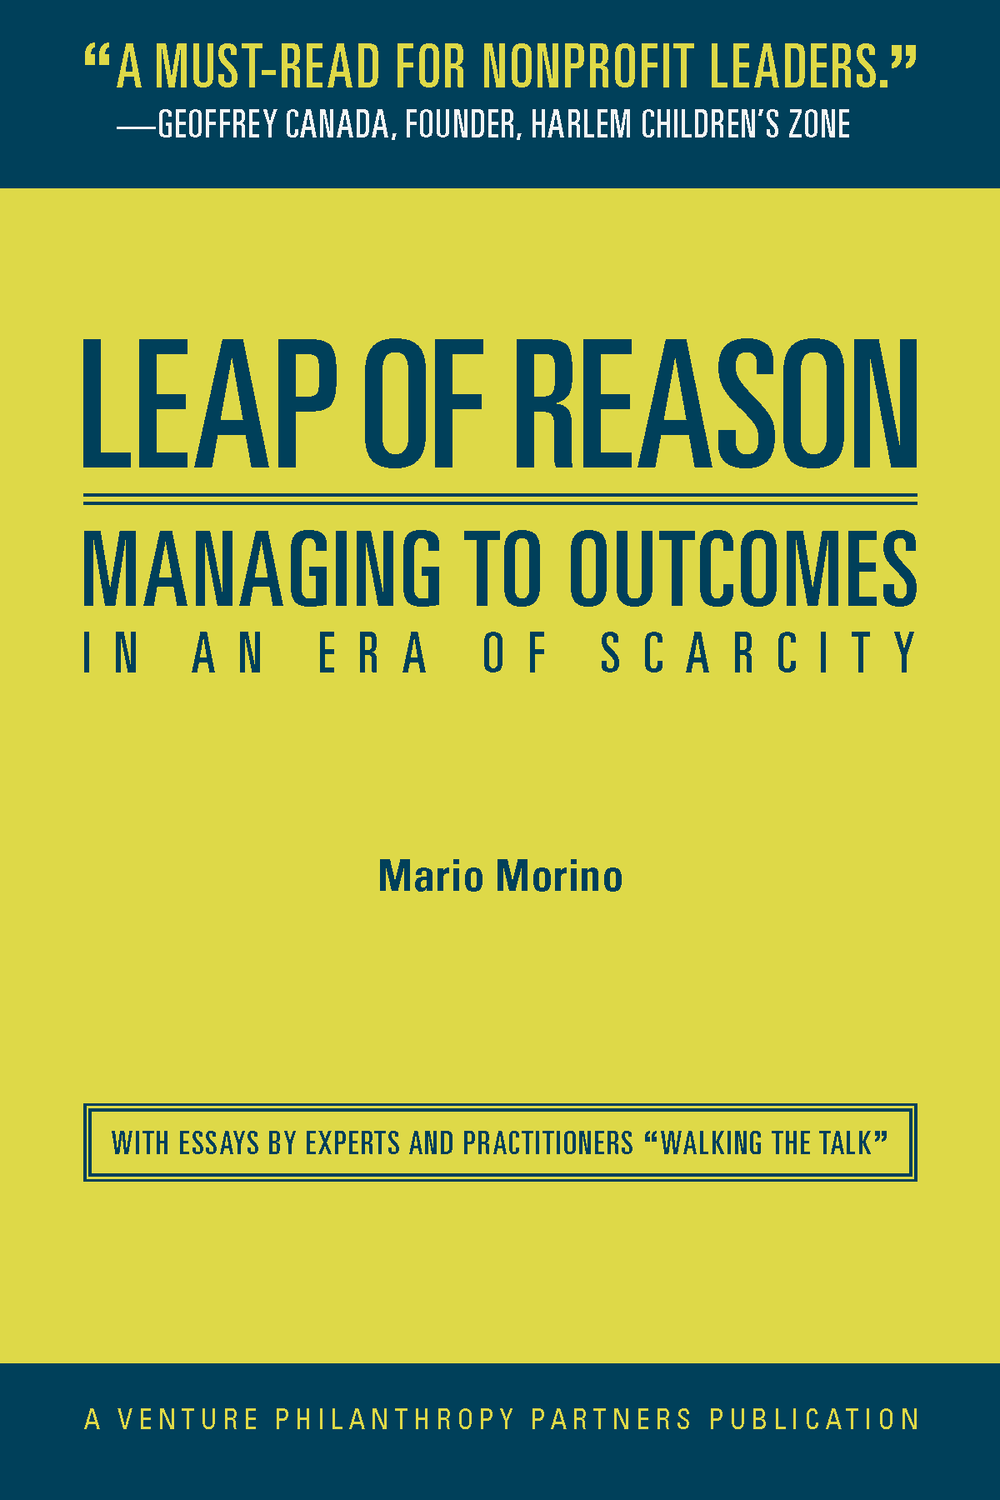 leap-of-reason-managing-to-outcomes.png